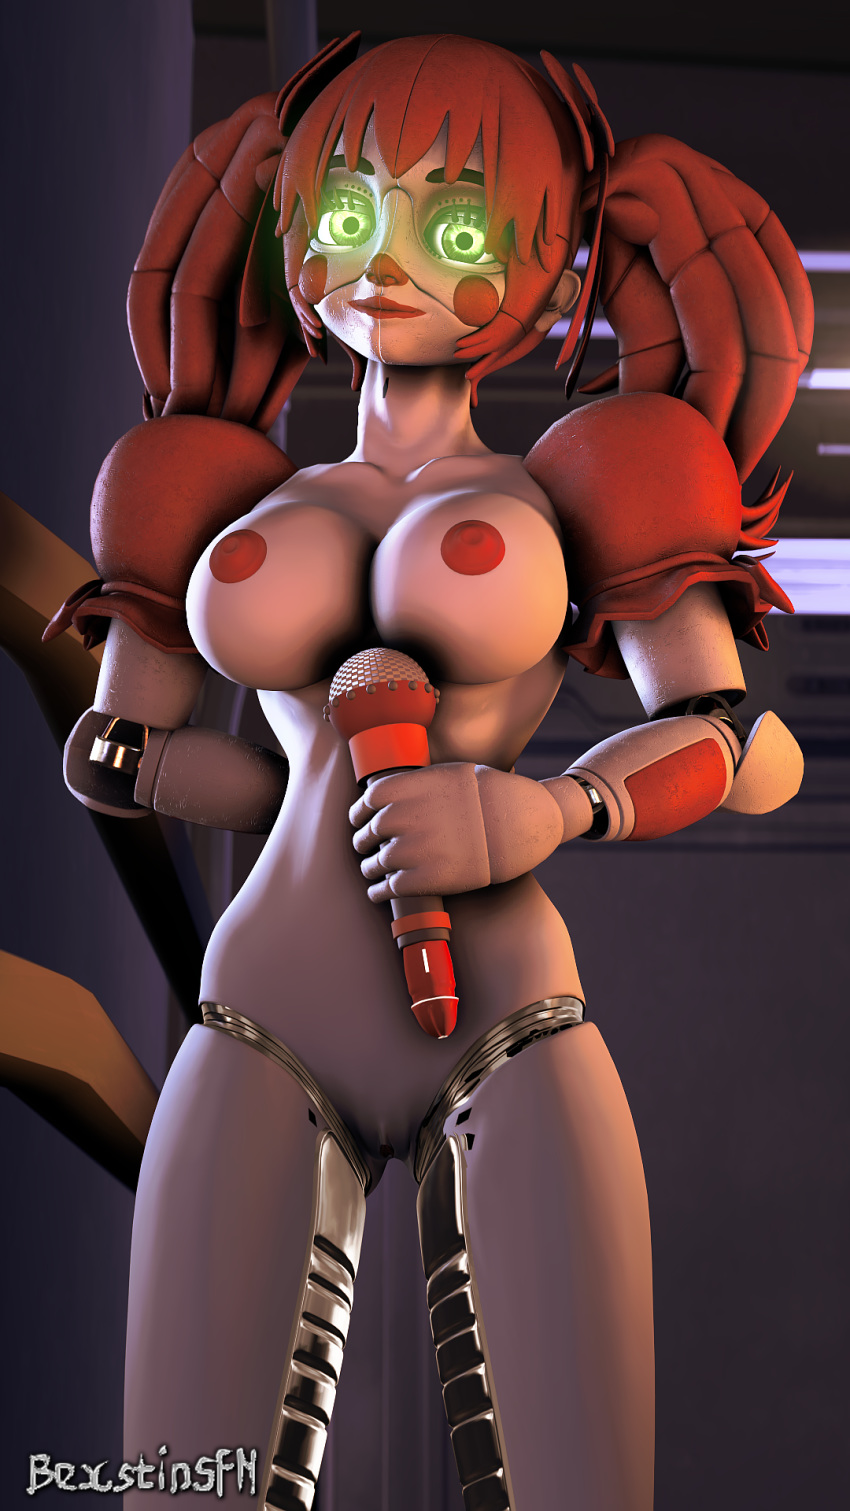 funtime location foxy at five freddy's nights sister The world ends with you beat and rhyme